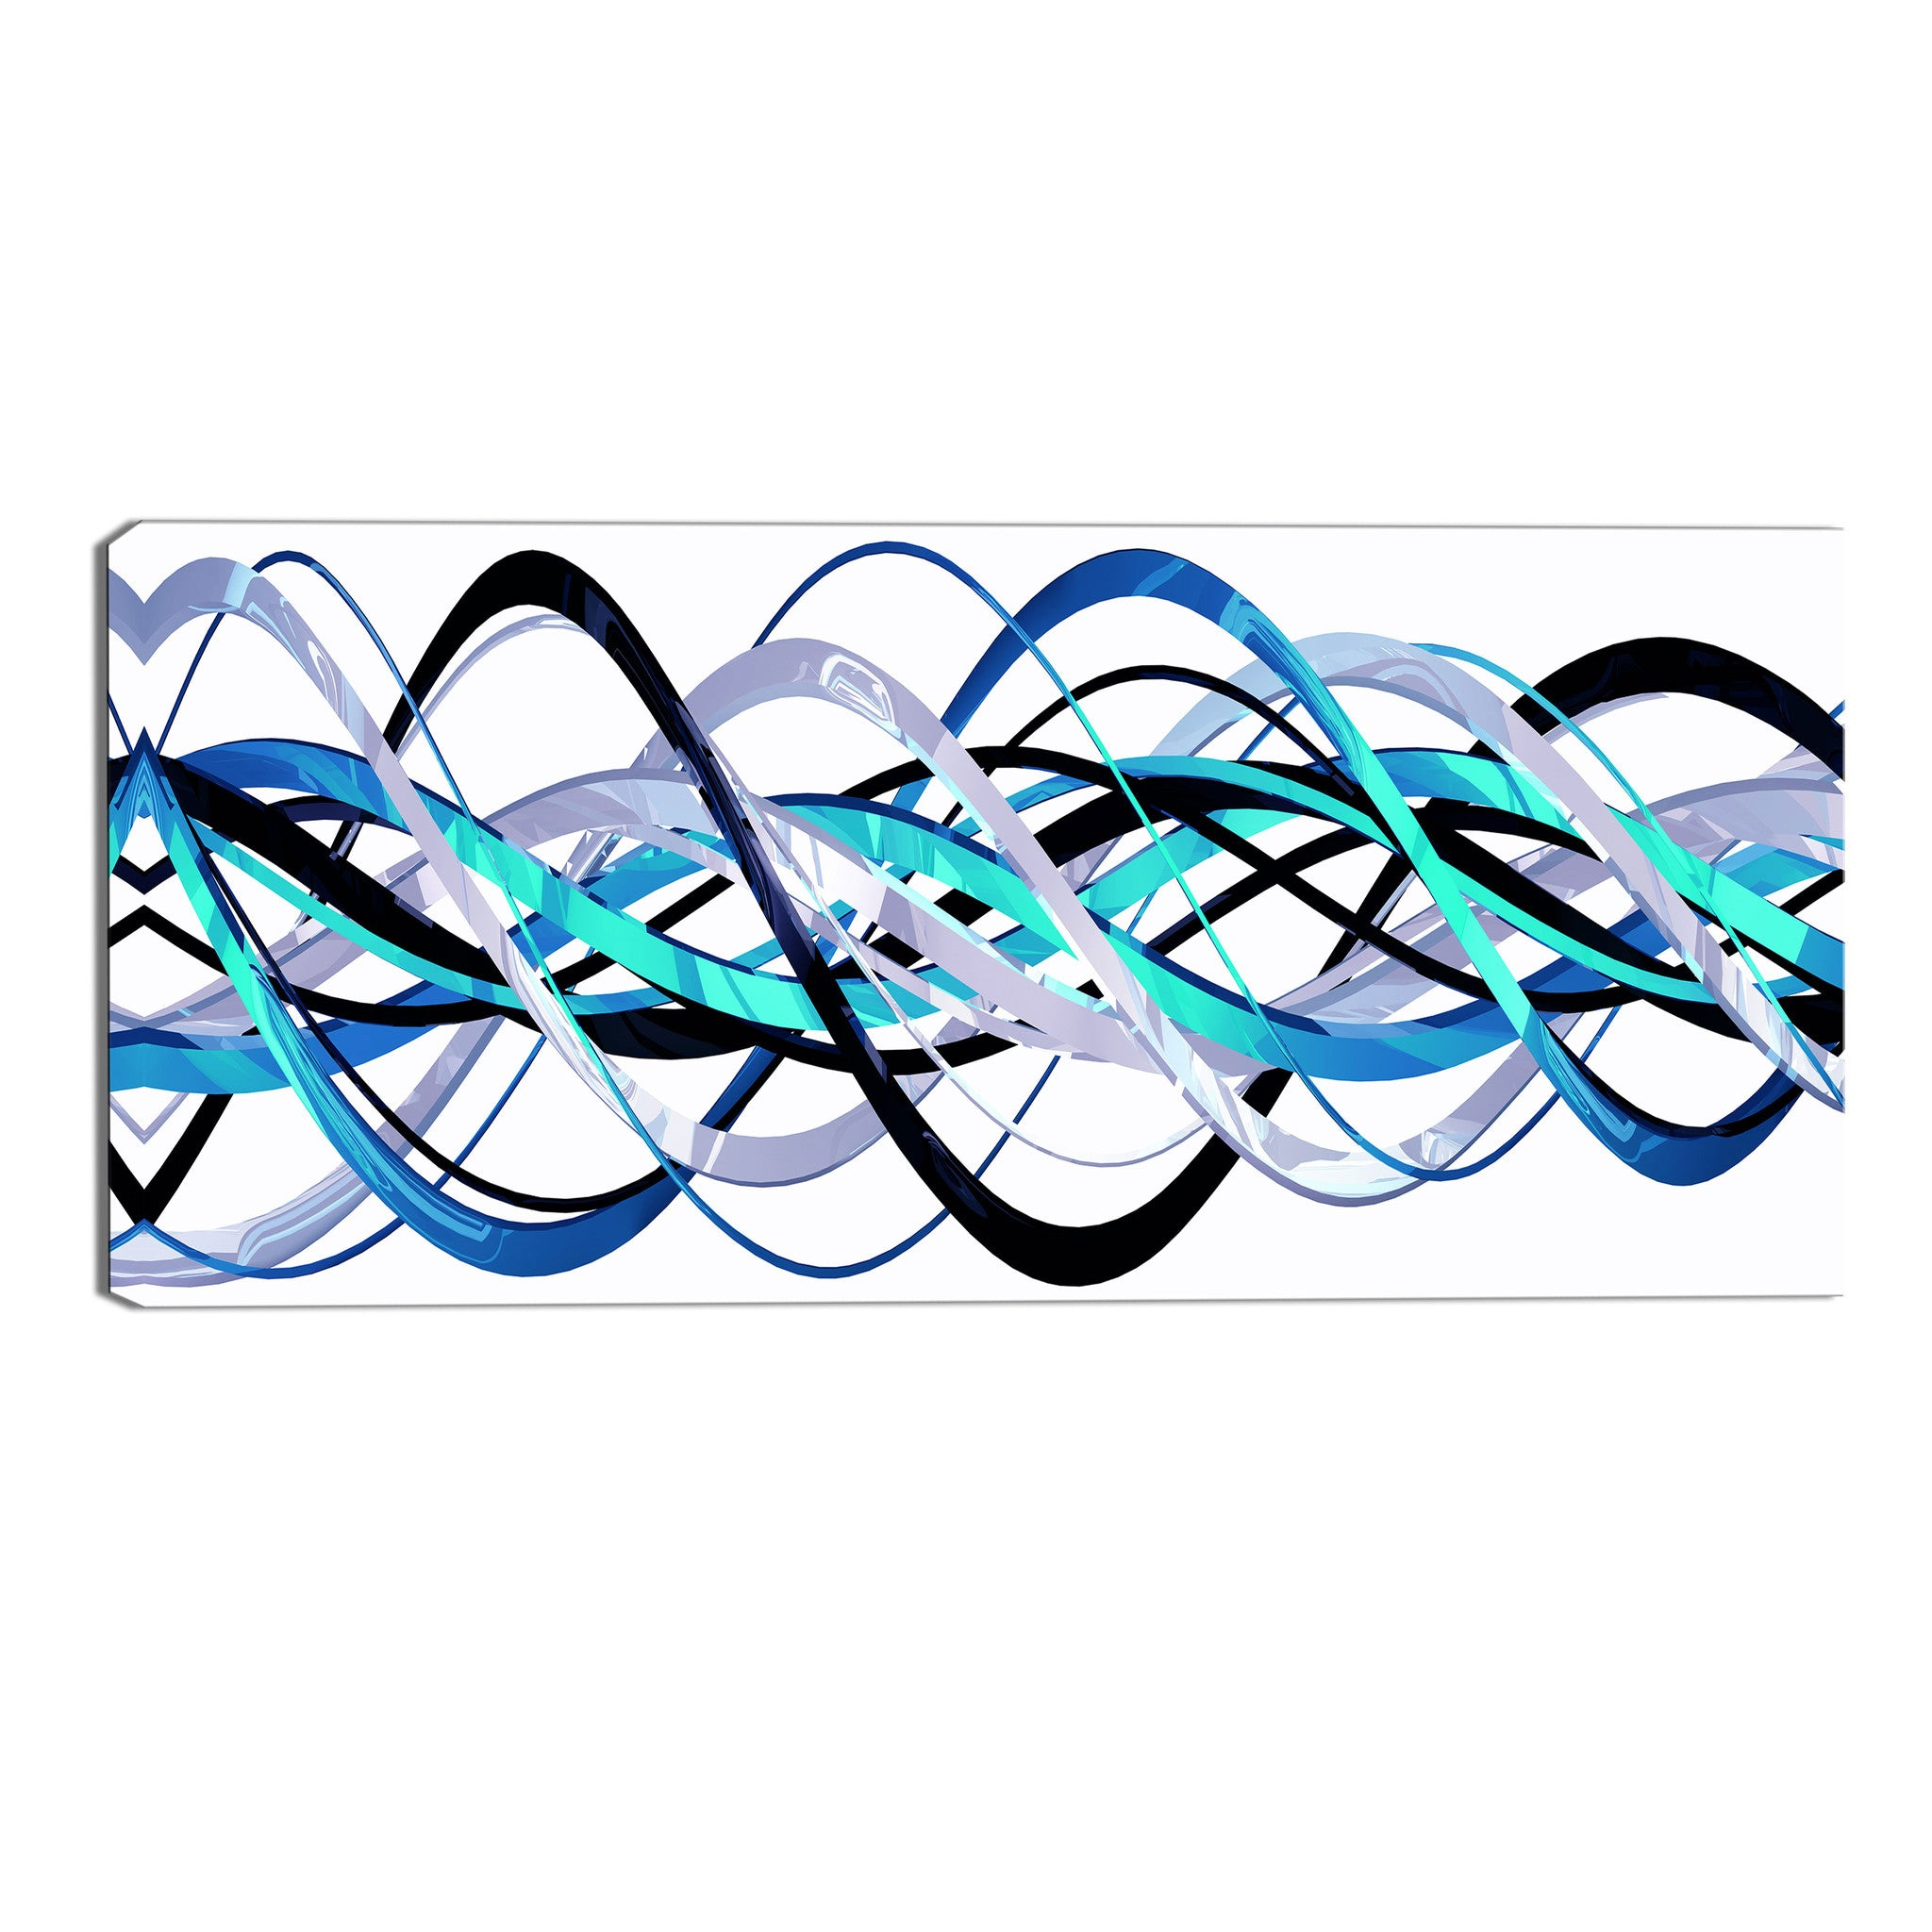 Blue and Silver Abstract Loops Canvas Wall Art Print